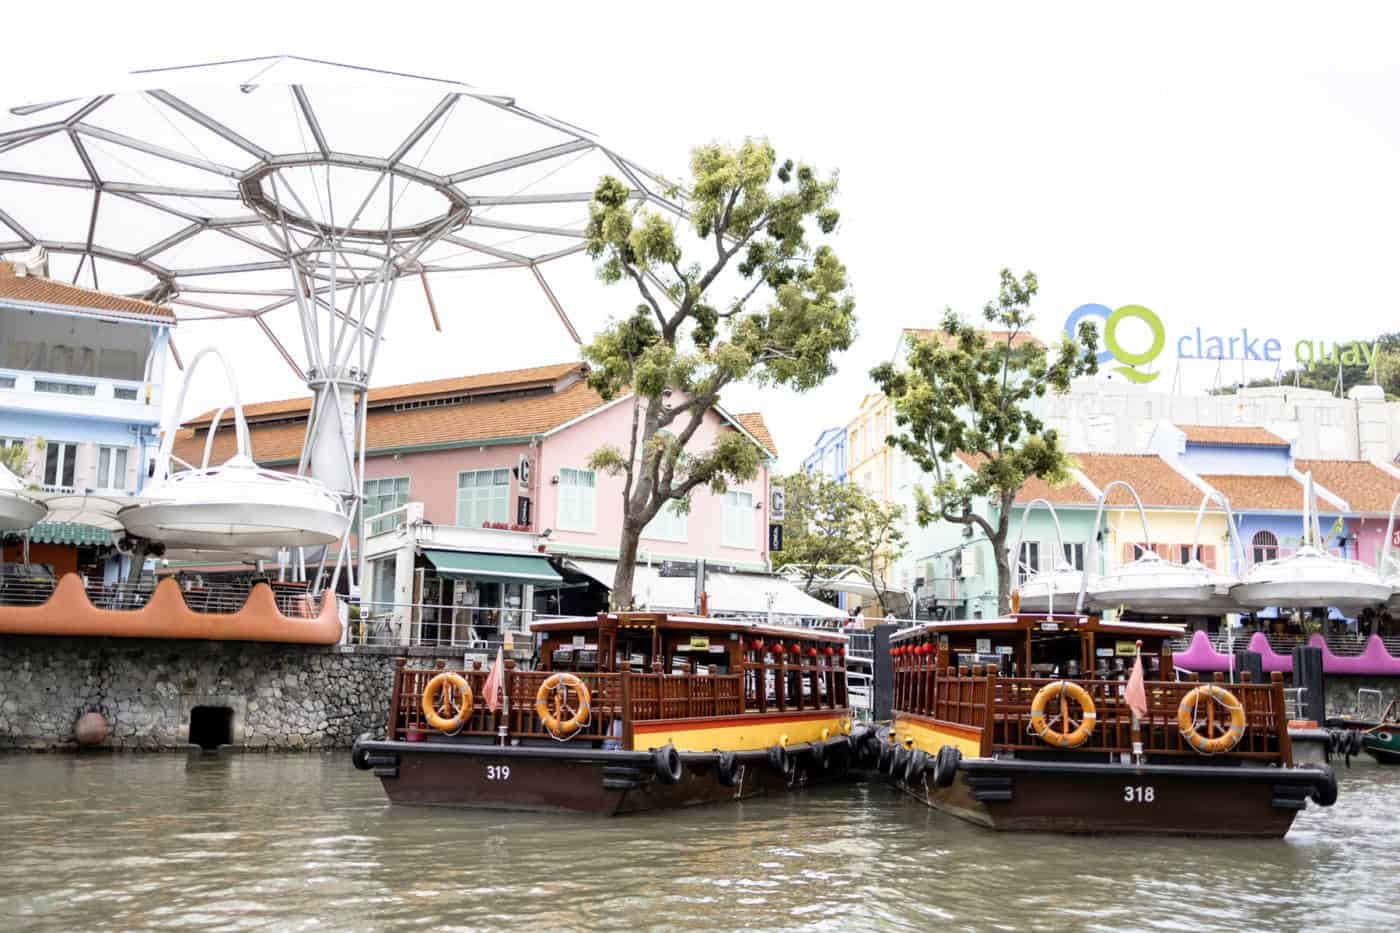 Singapore river cruise boats in front of Clarke Quay